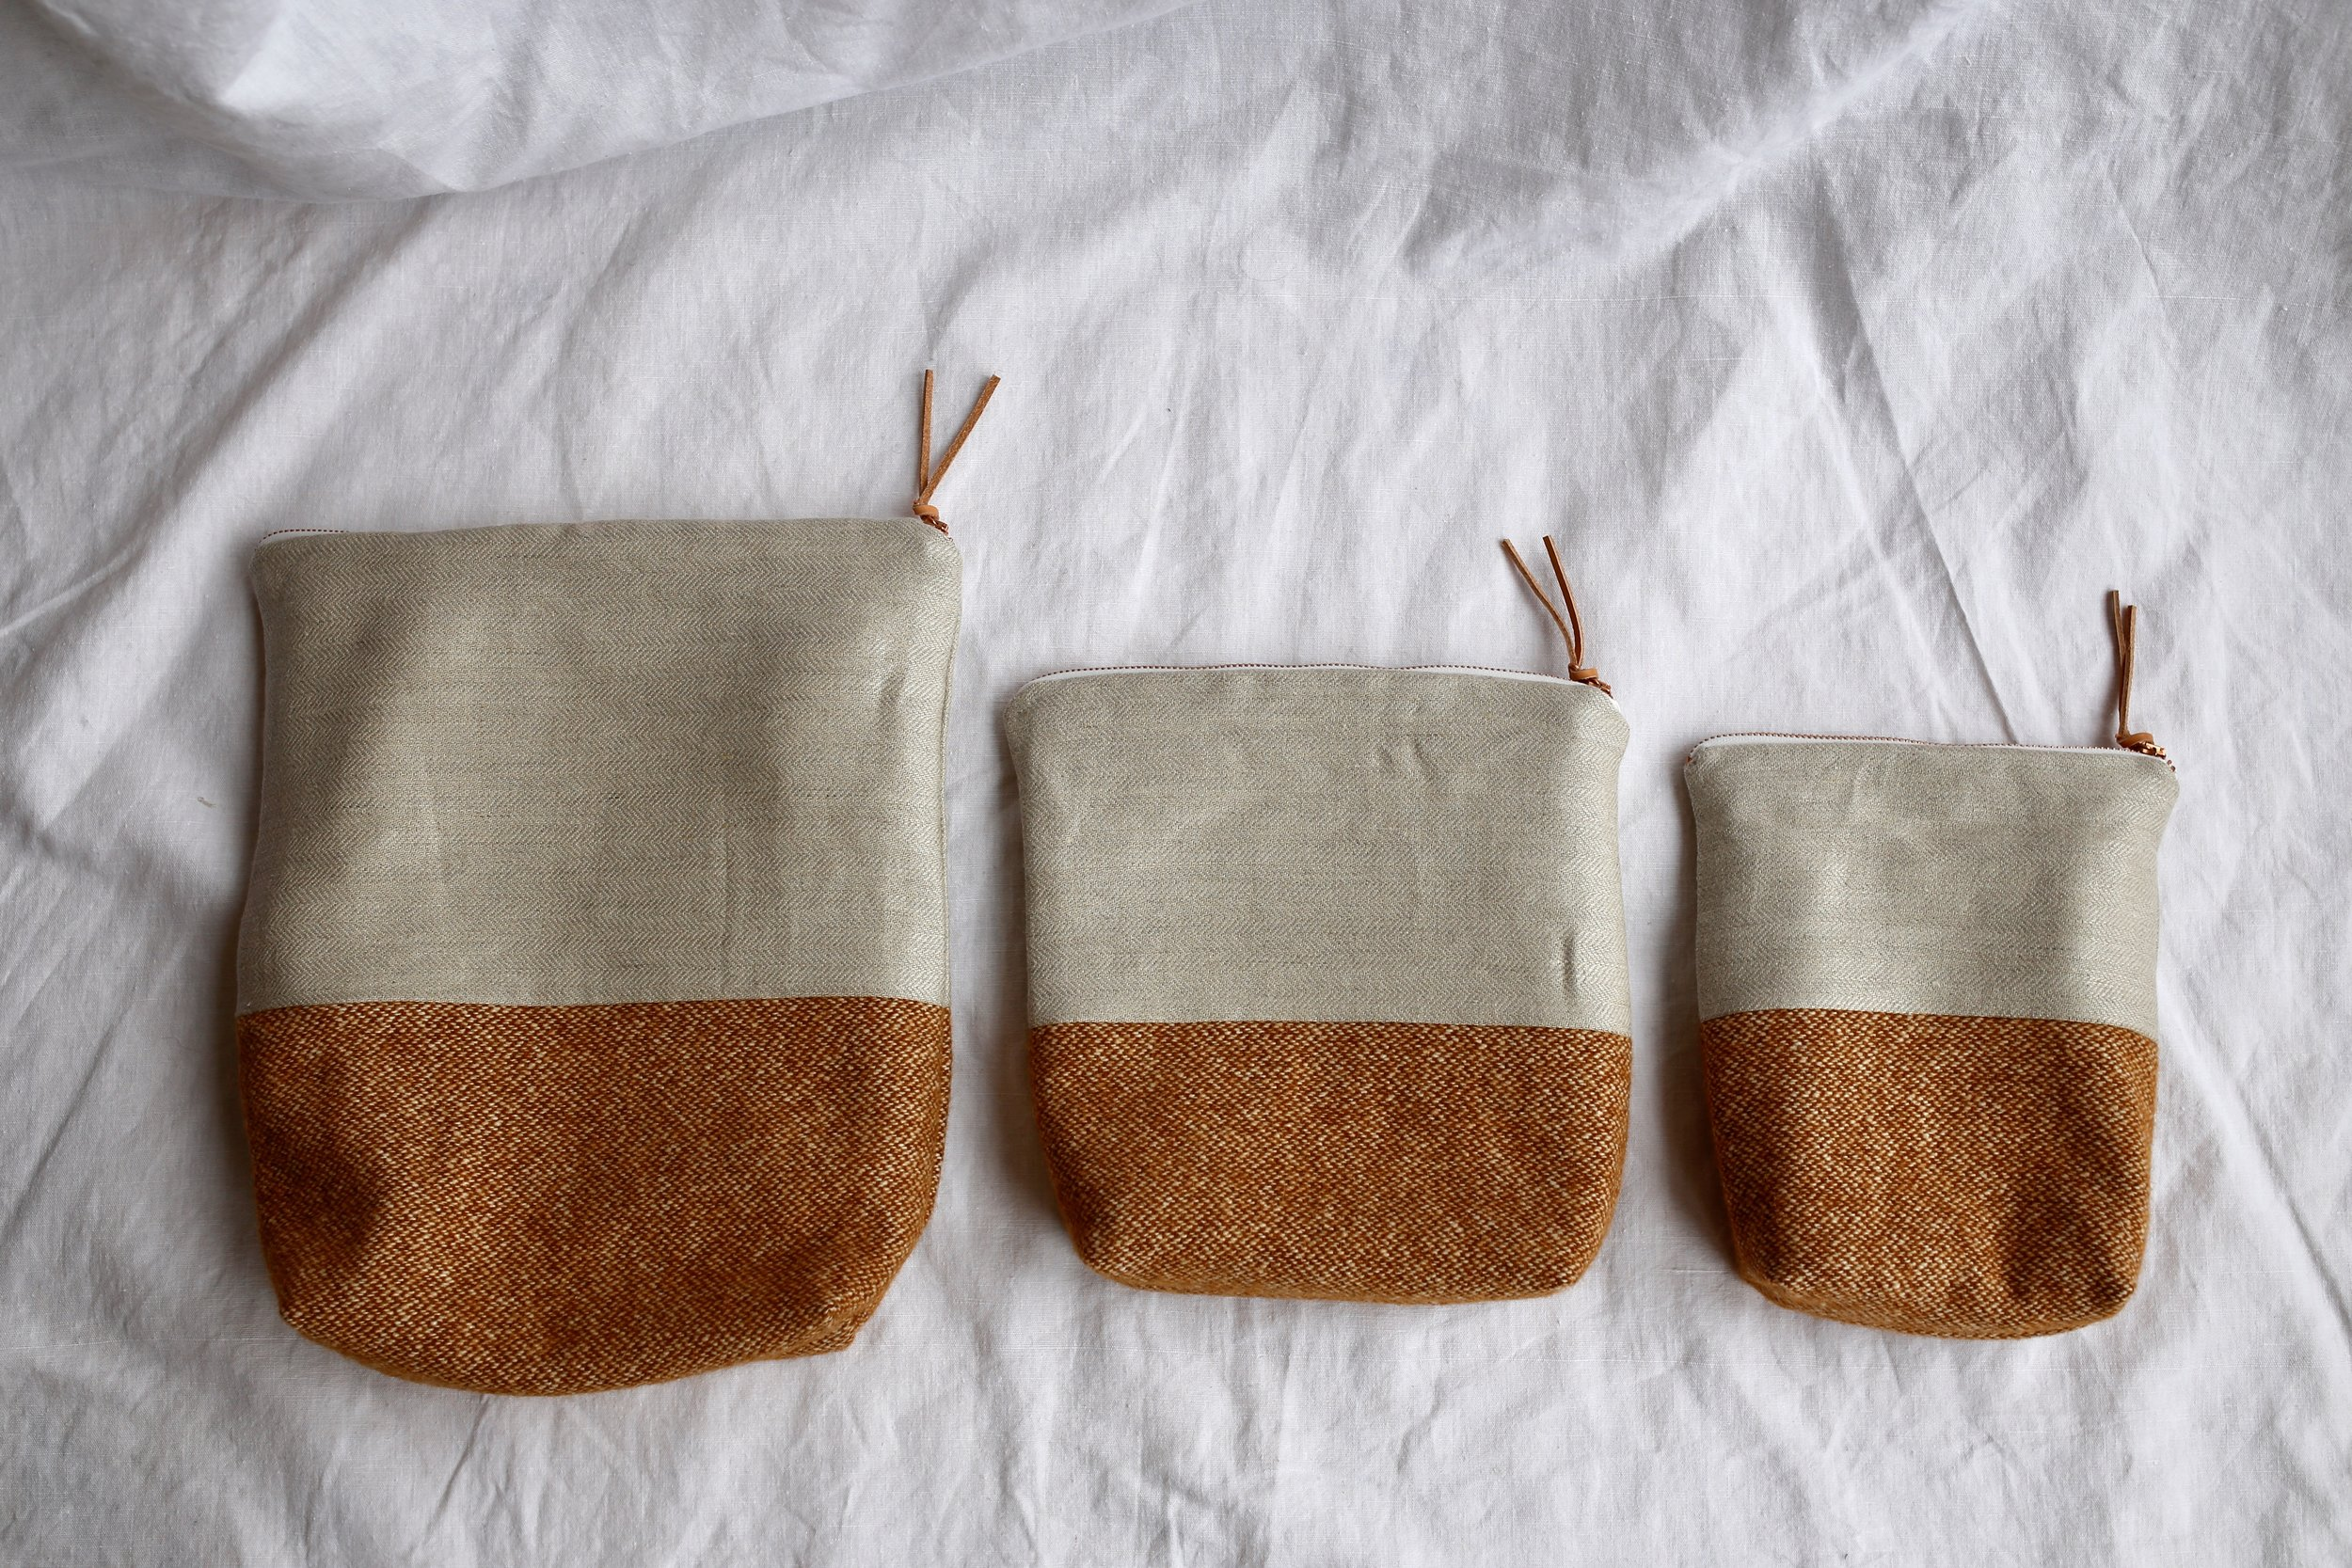 From left to right: Large, Medium & Small.